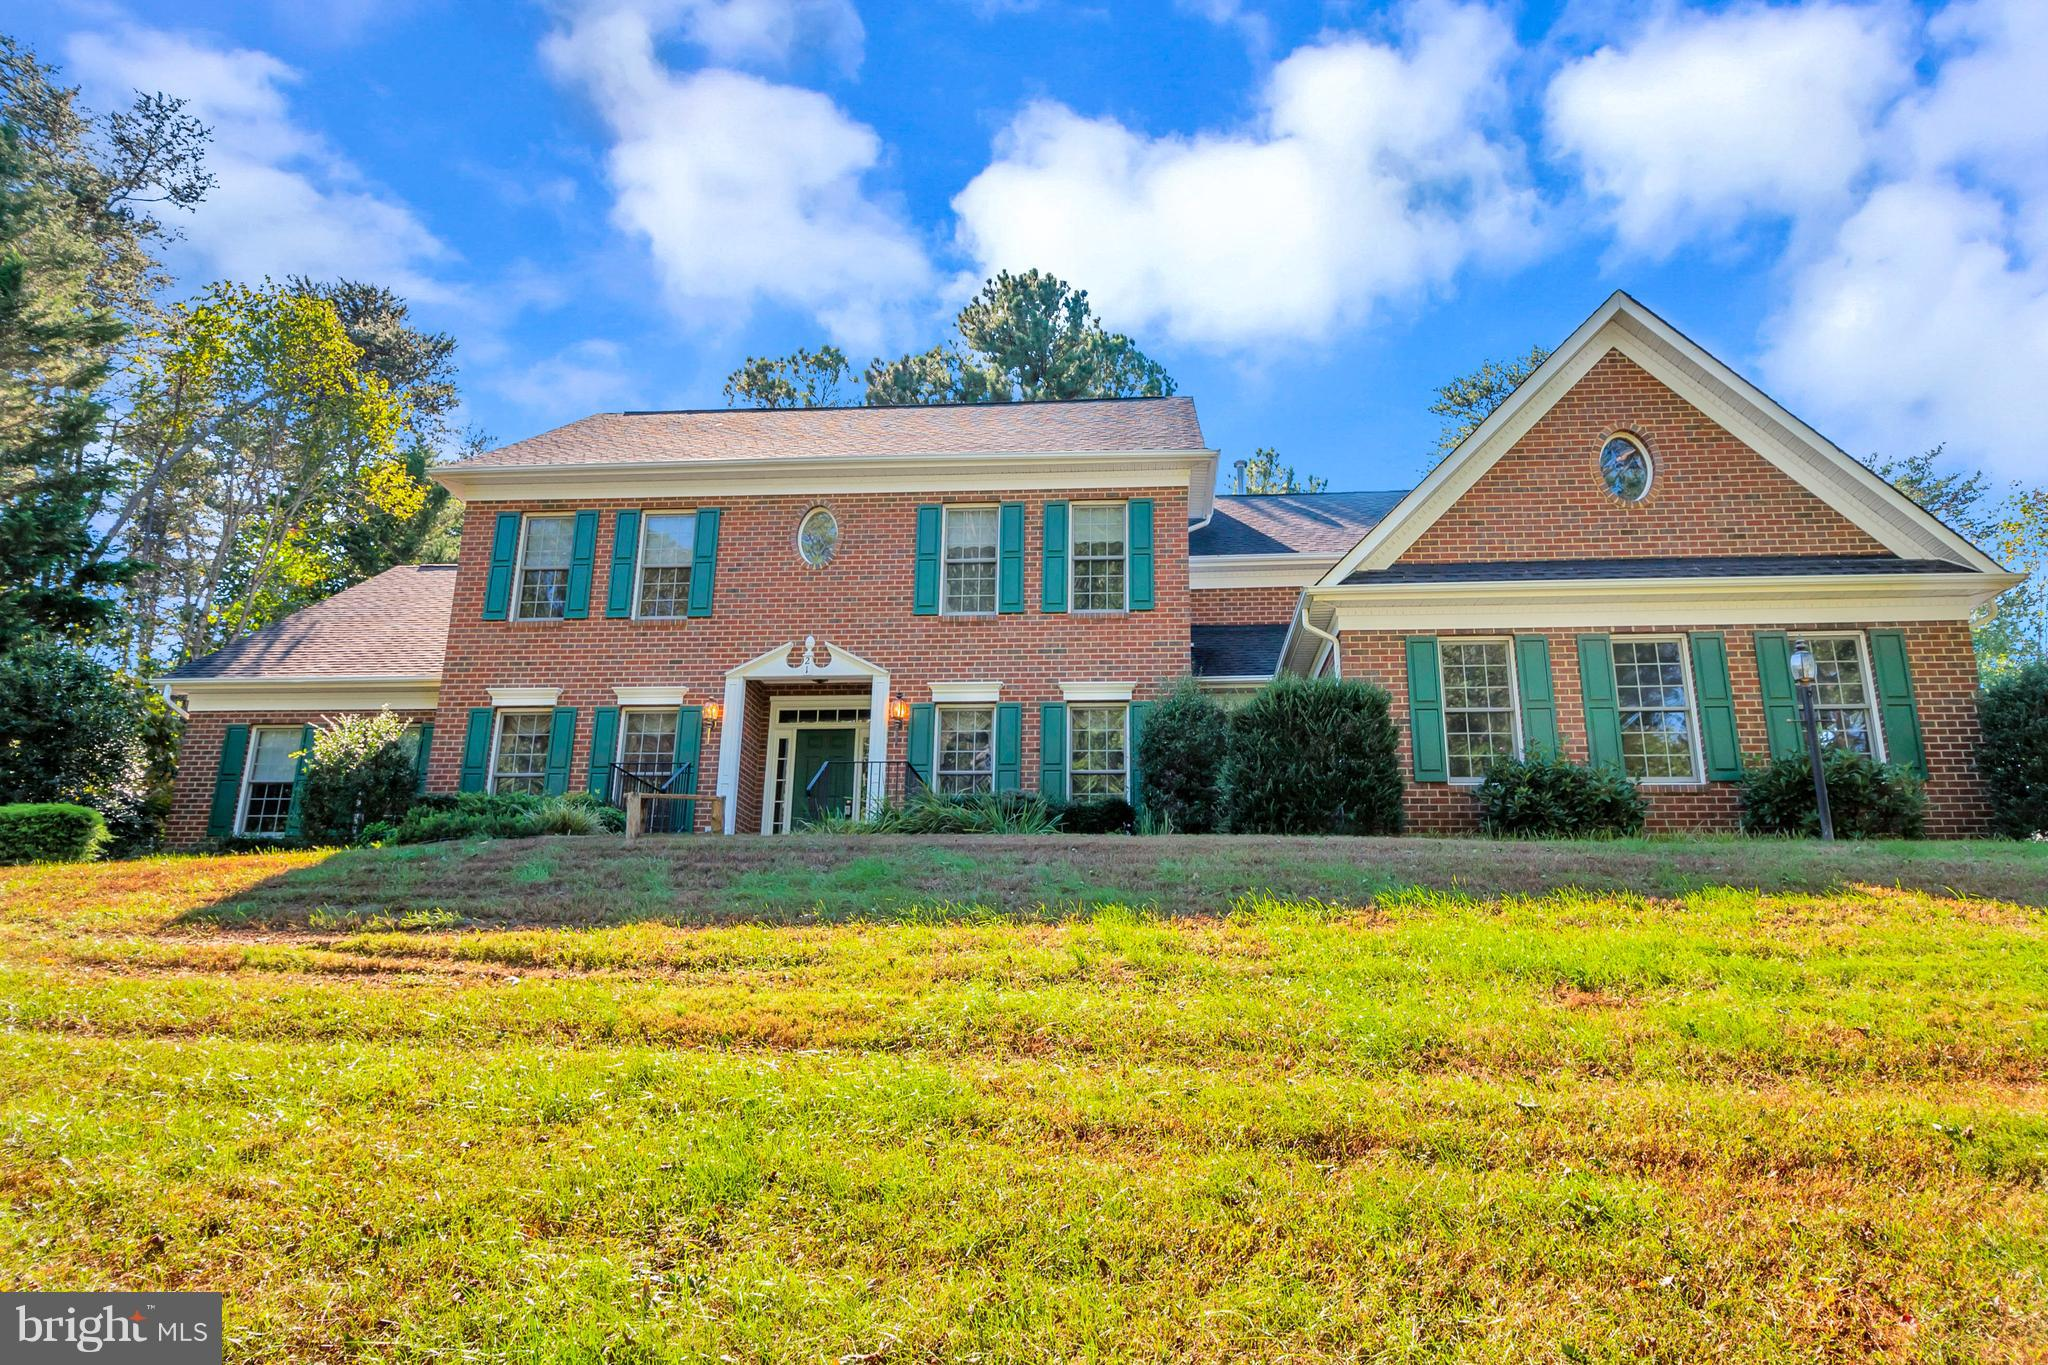 Located in Premier equestrian community of Stafford, abundantly spacious colonial is tucked away on